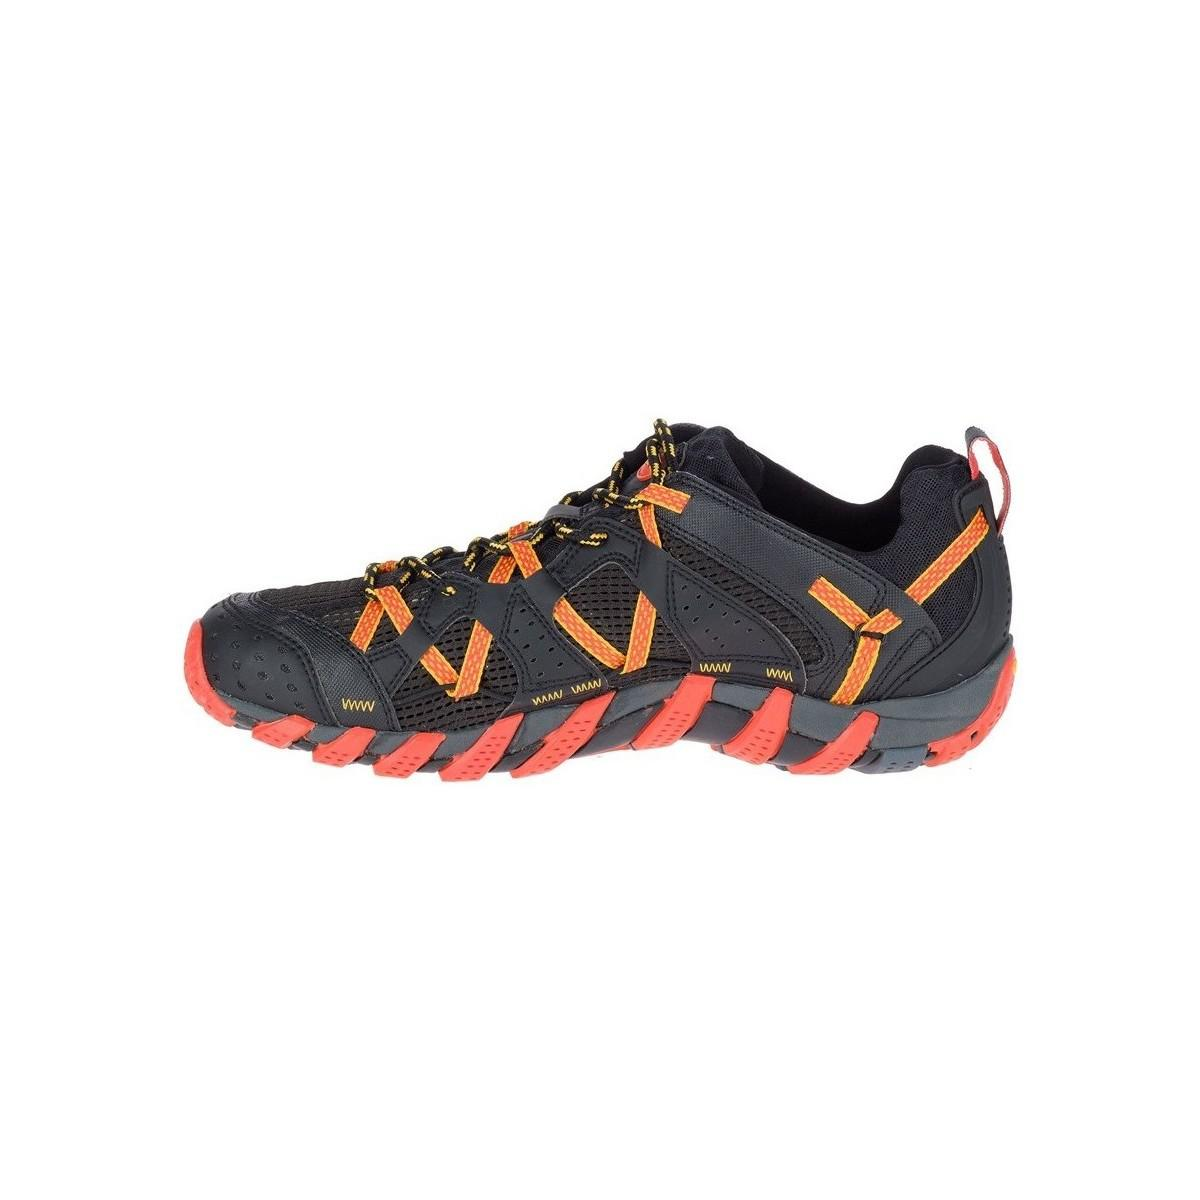 Merrell Maipo Men's Shoes (trainers) In Multicolour for Men